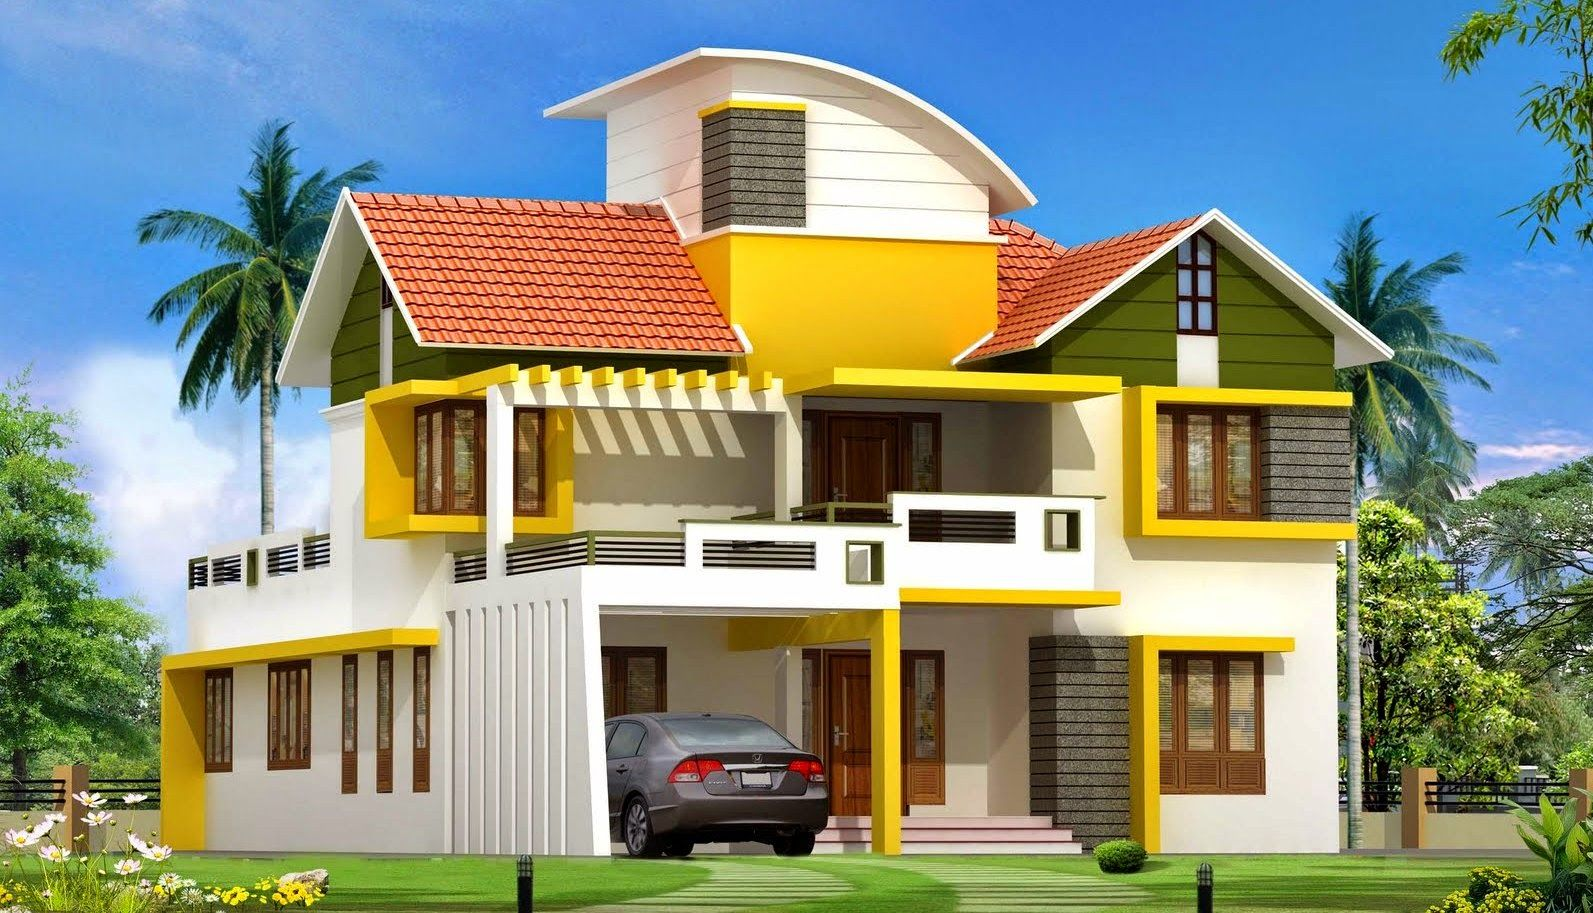 kerala home design new modern houses home interior design trends - New Home Design Trends